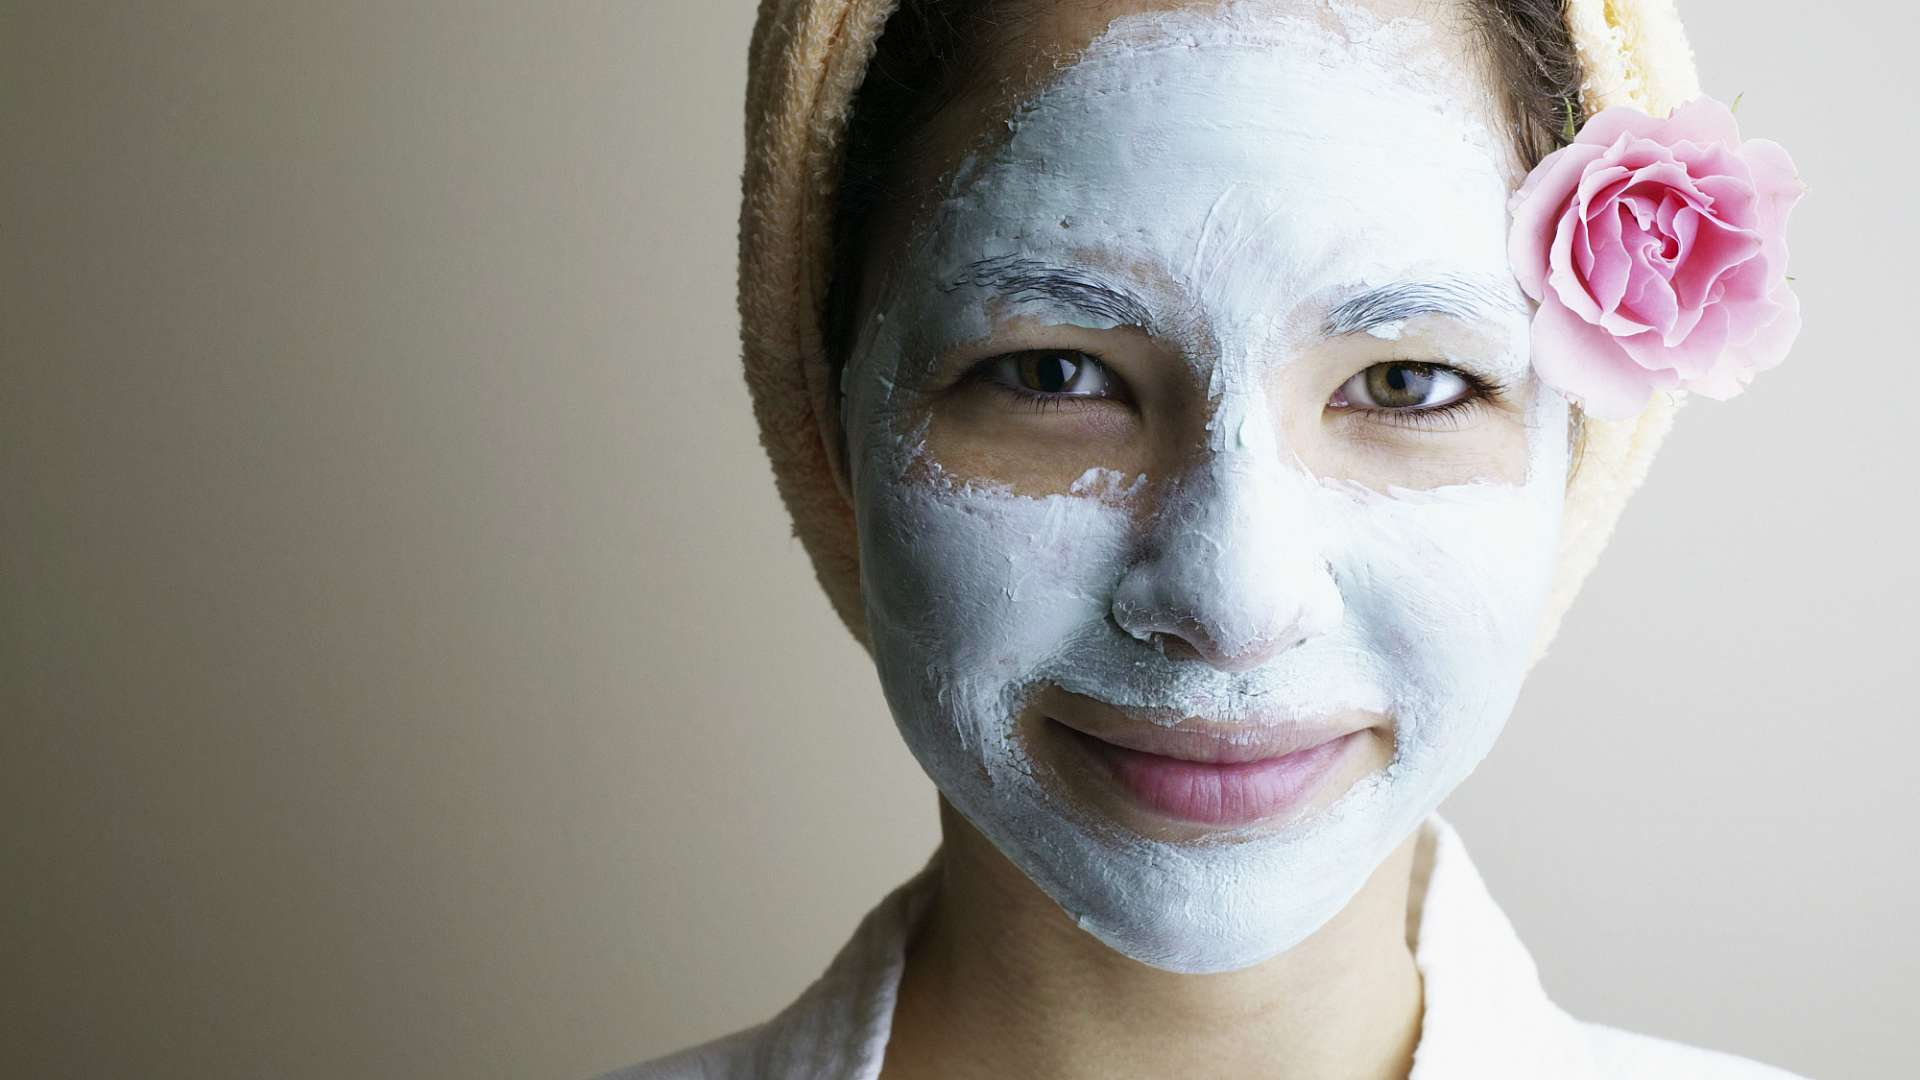 Enzymes are used in the creation of cosmetics